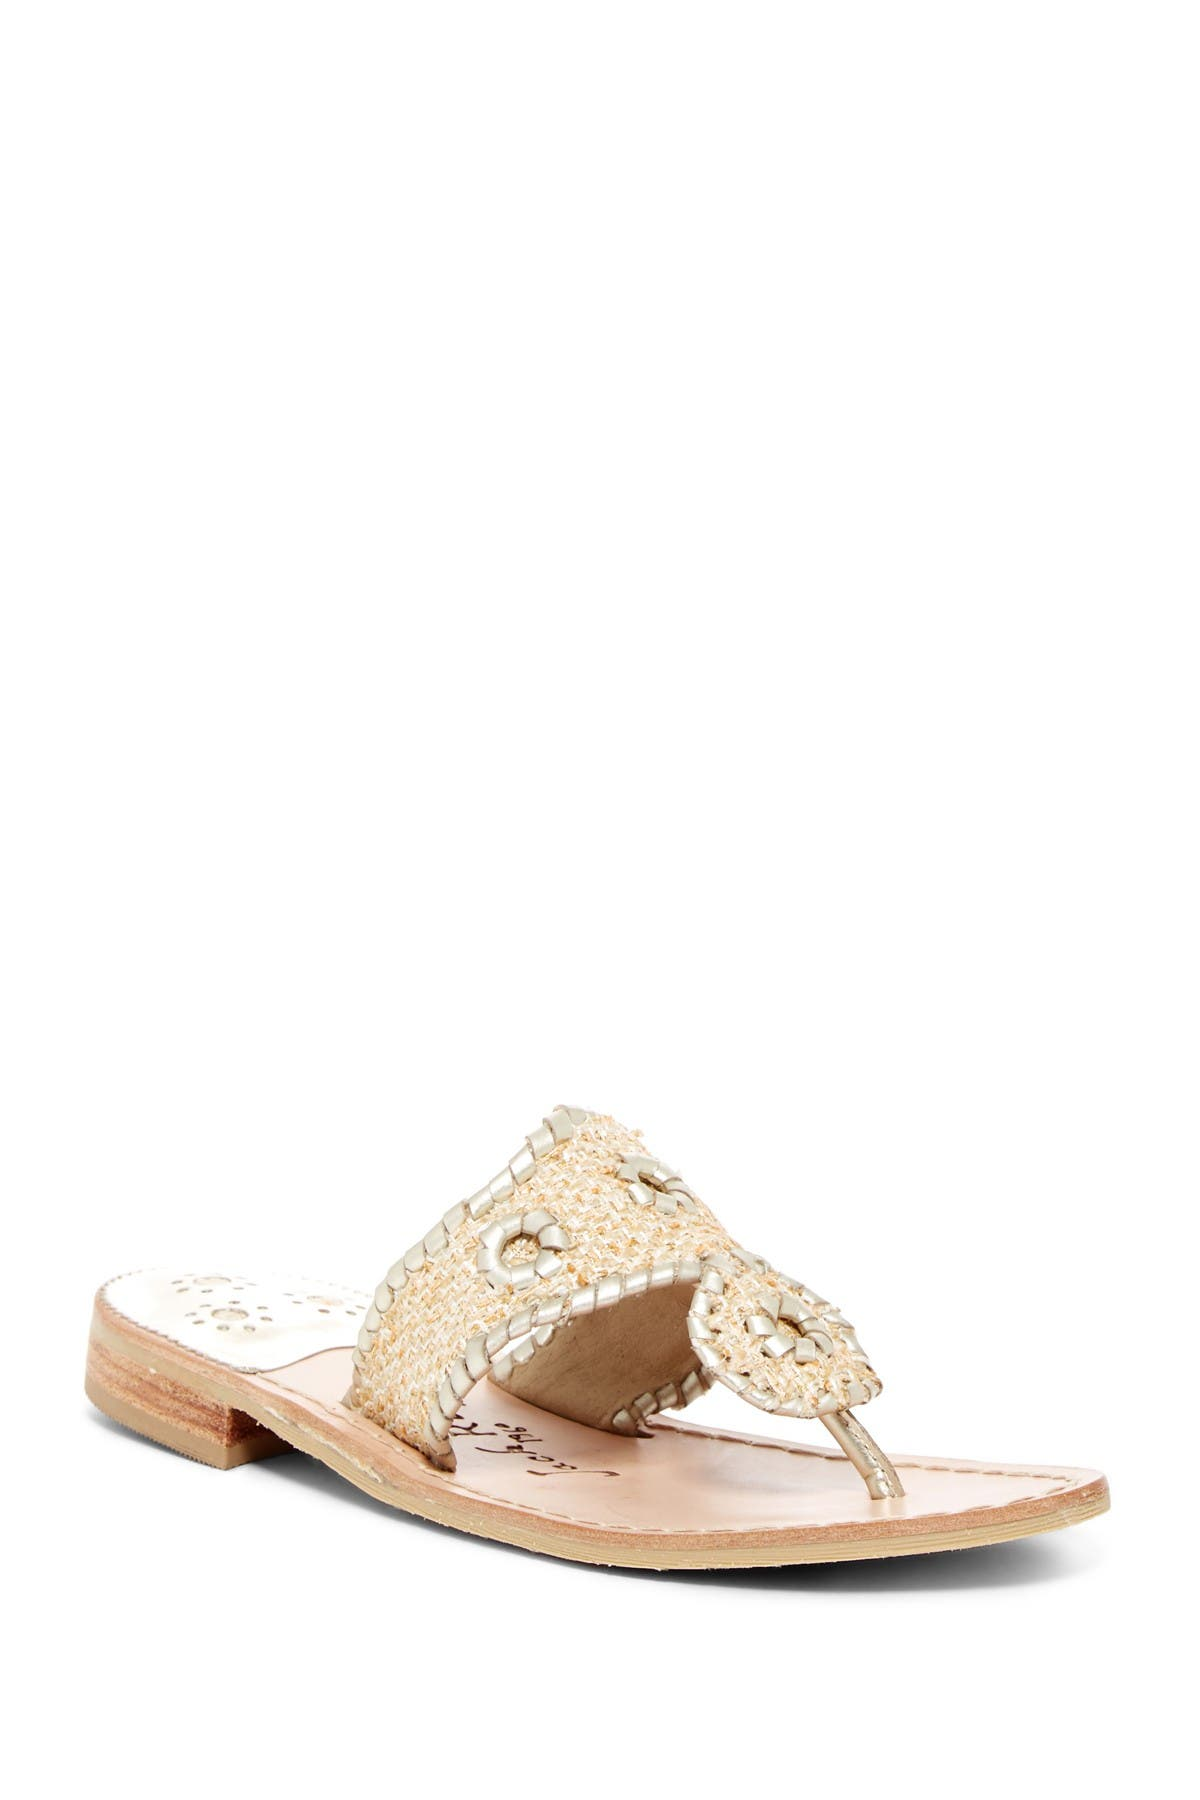 Image of Jack Rogers Genevieve Thong Sandal